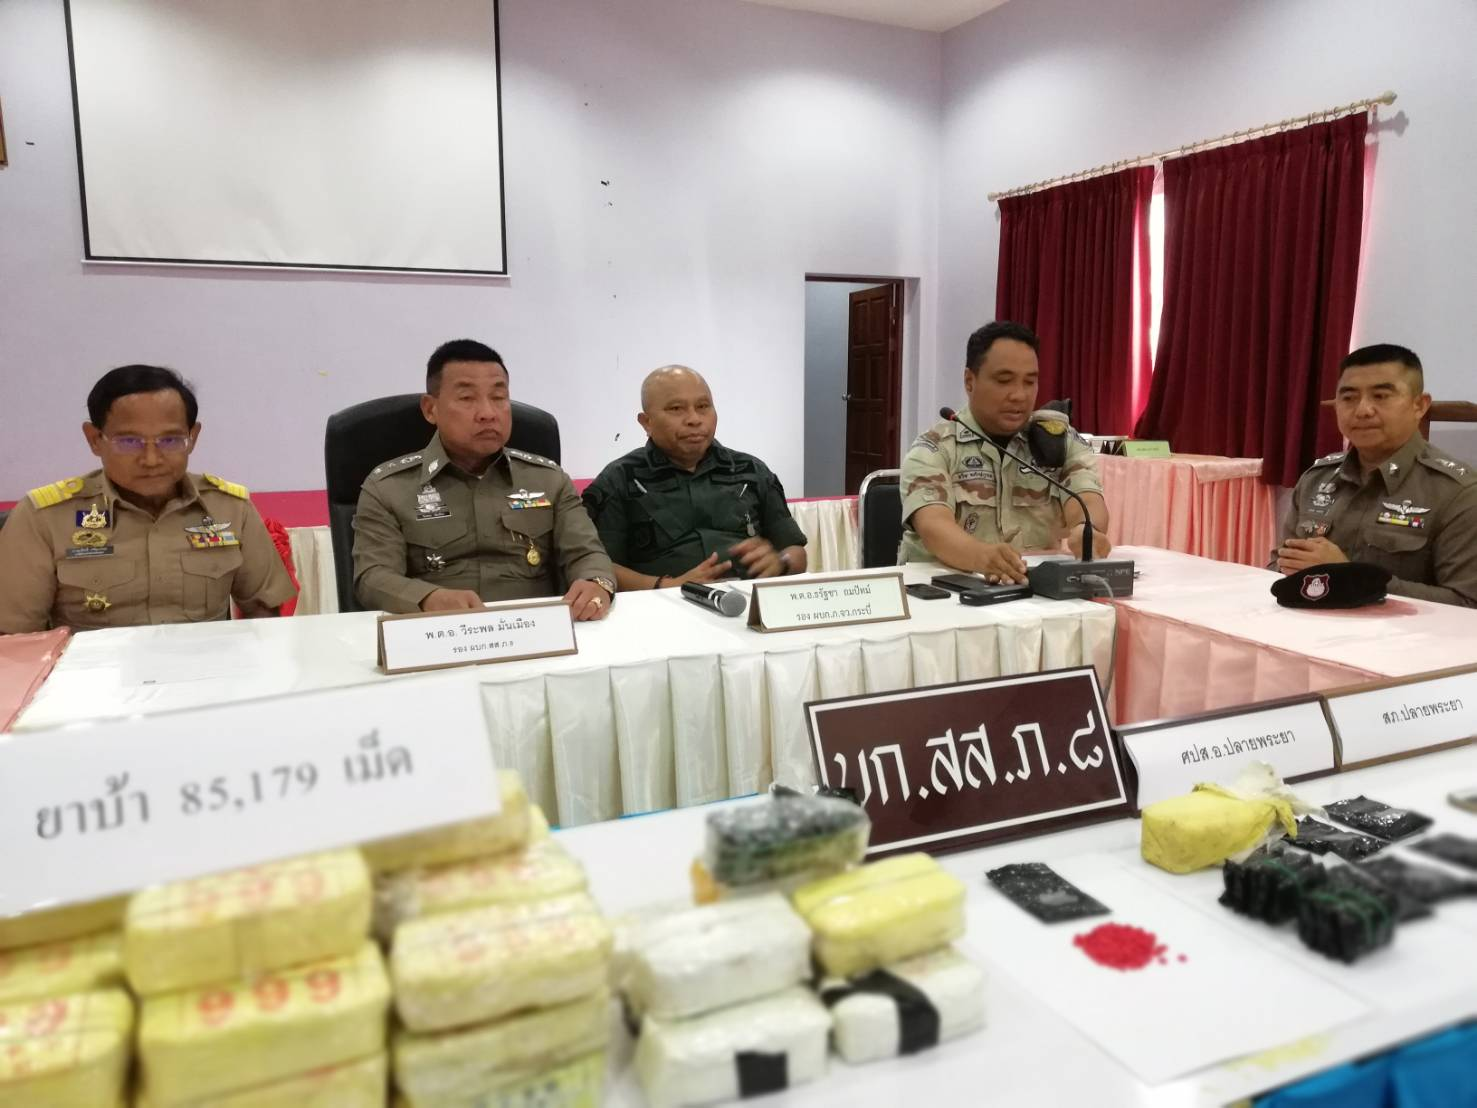 10 million Baht crackdown on drugs. Meanwhile the drugs get cheaper. | The Thaiger